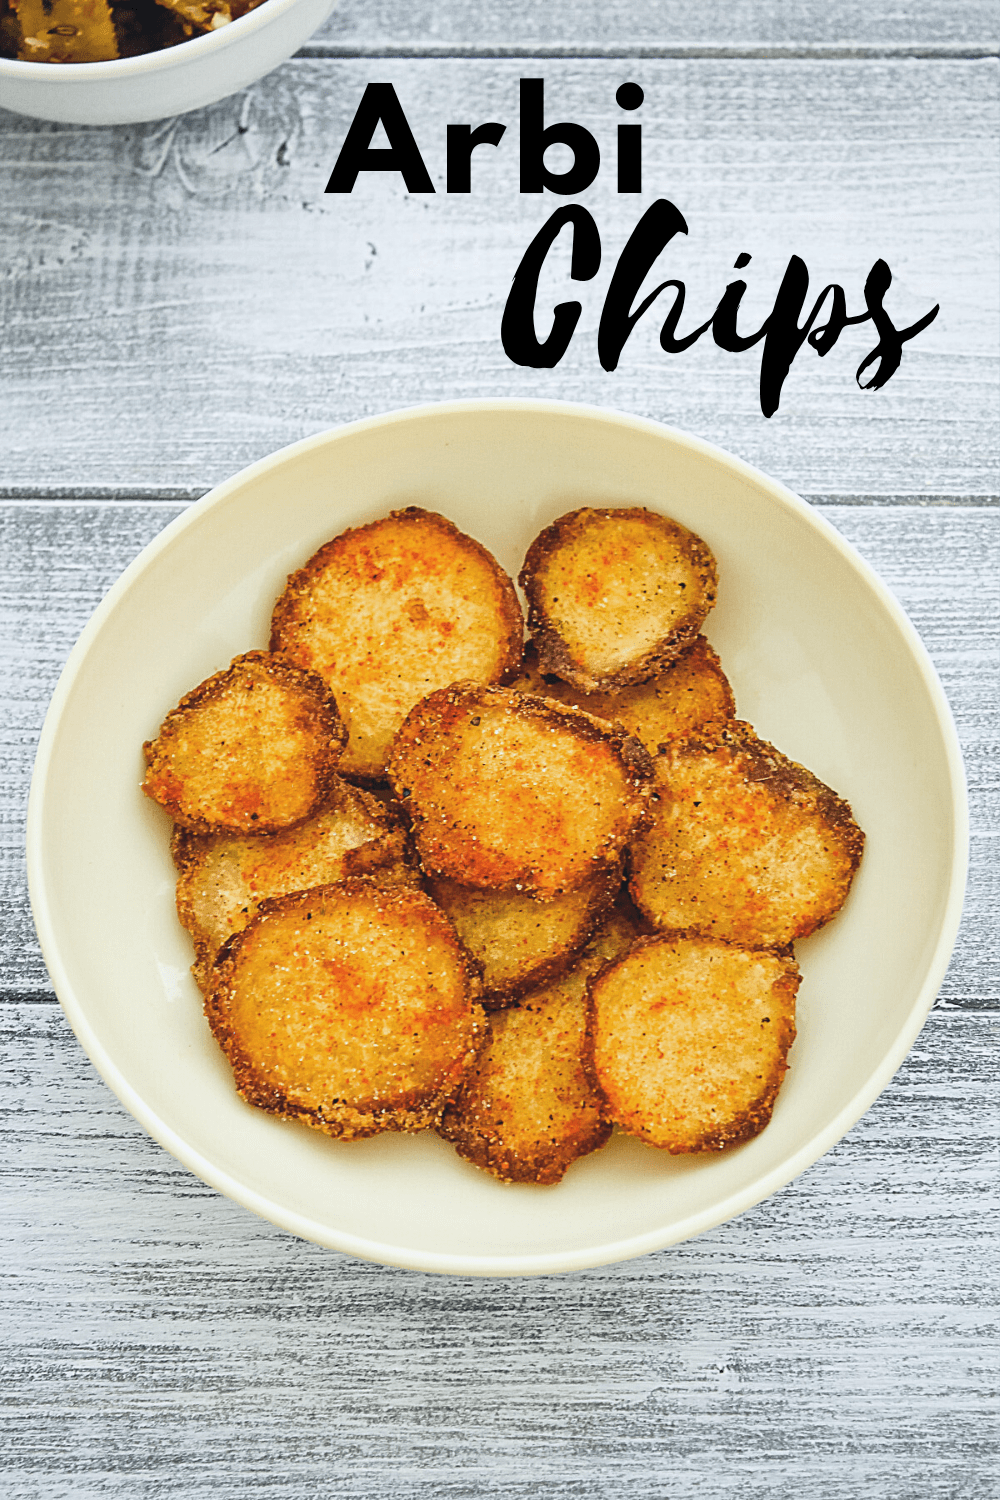 arbi chips in a plate with text on the image for pinterest